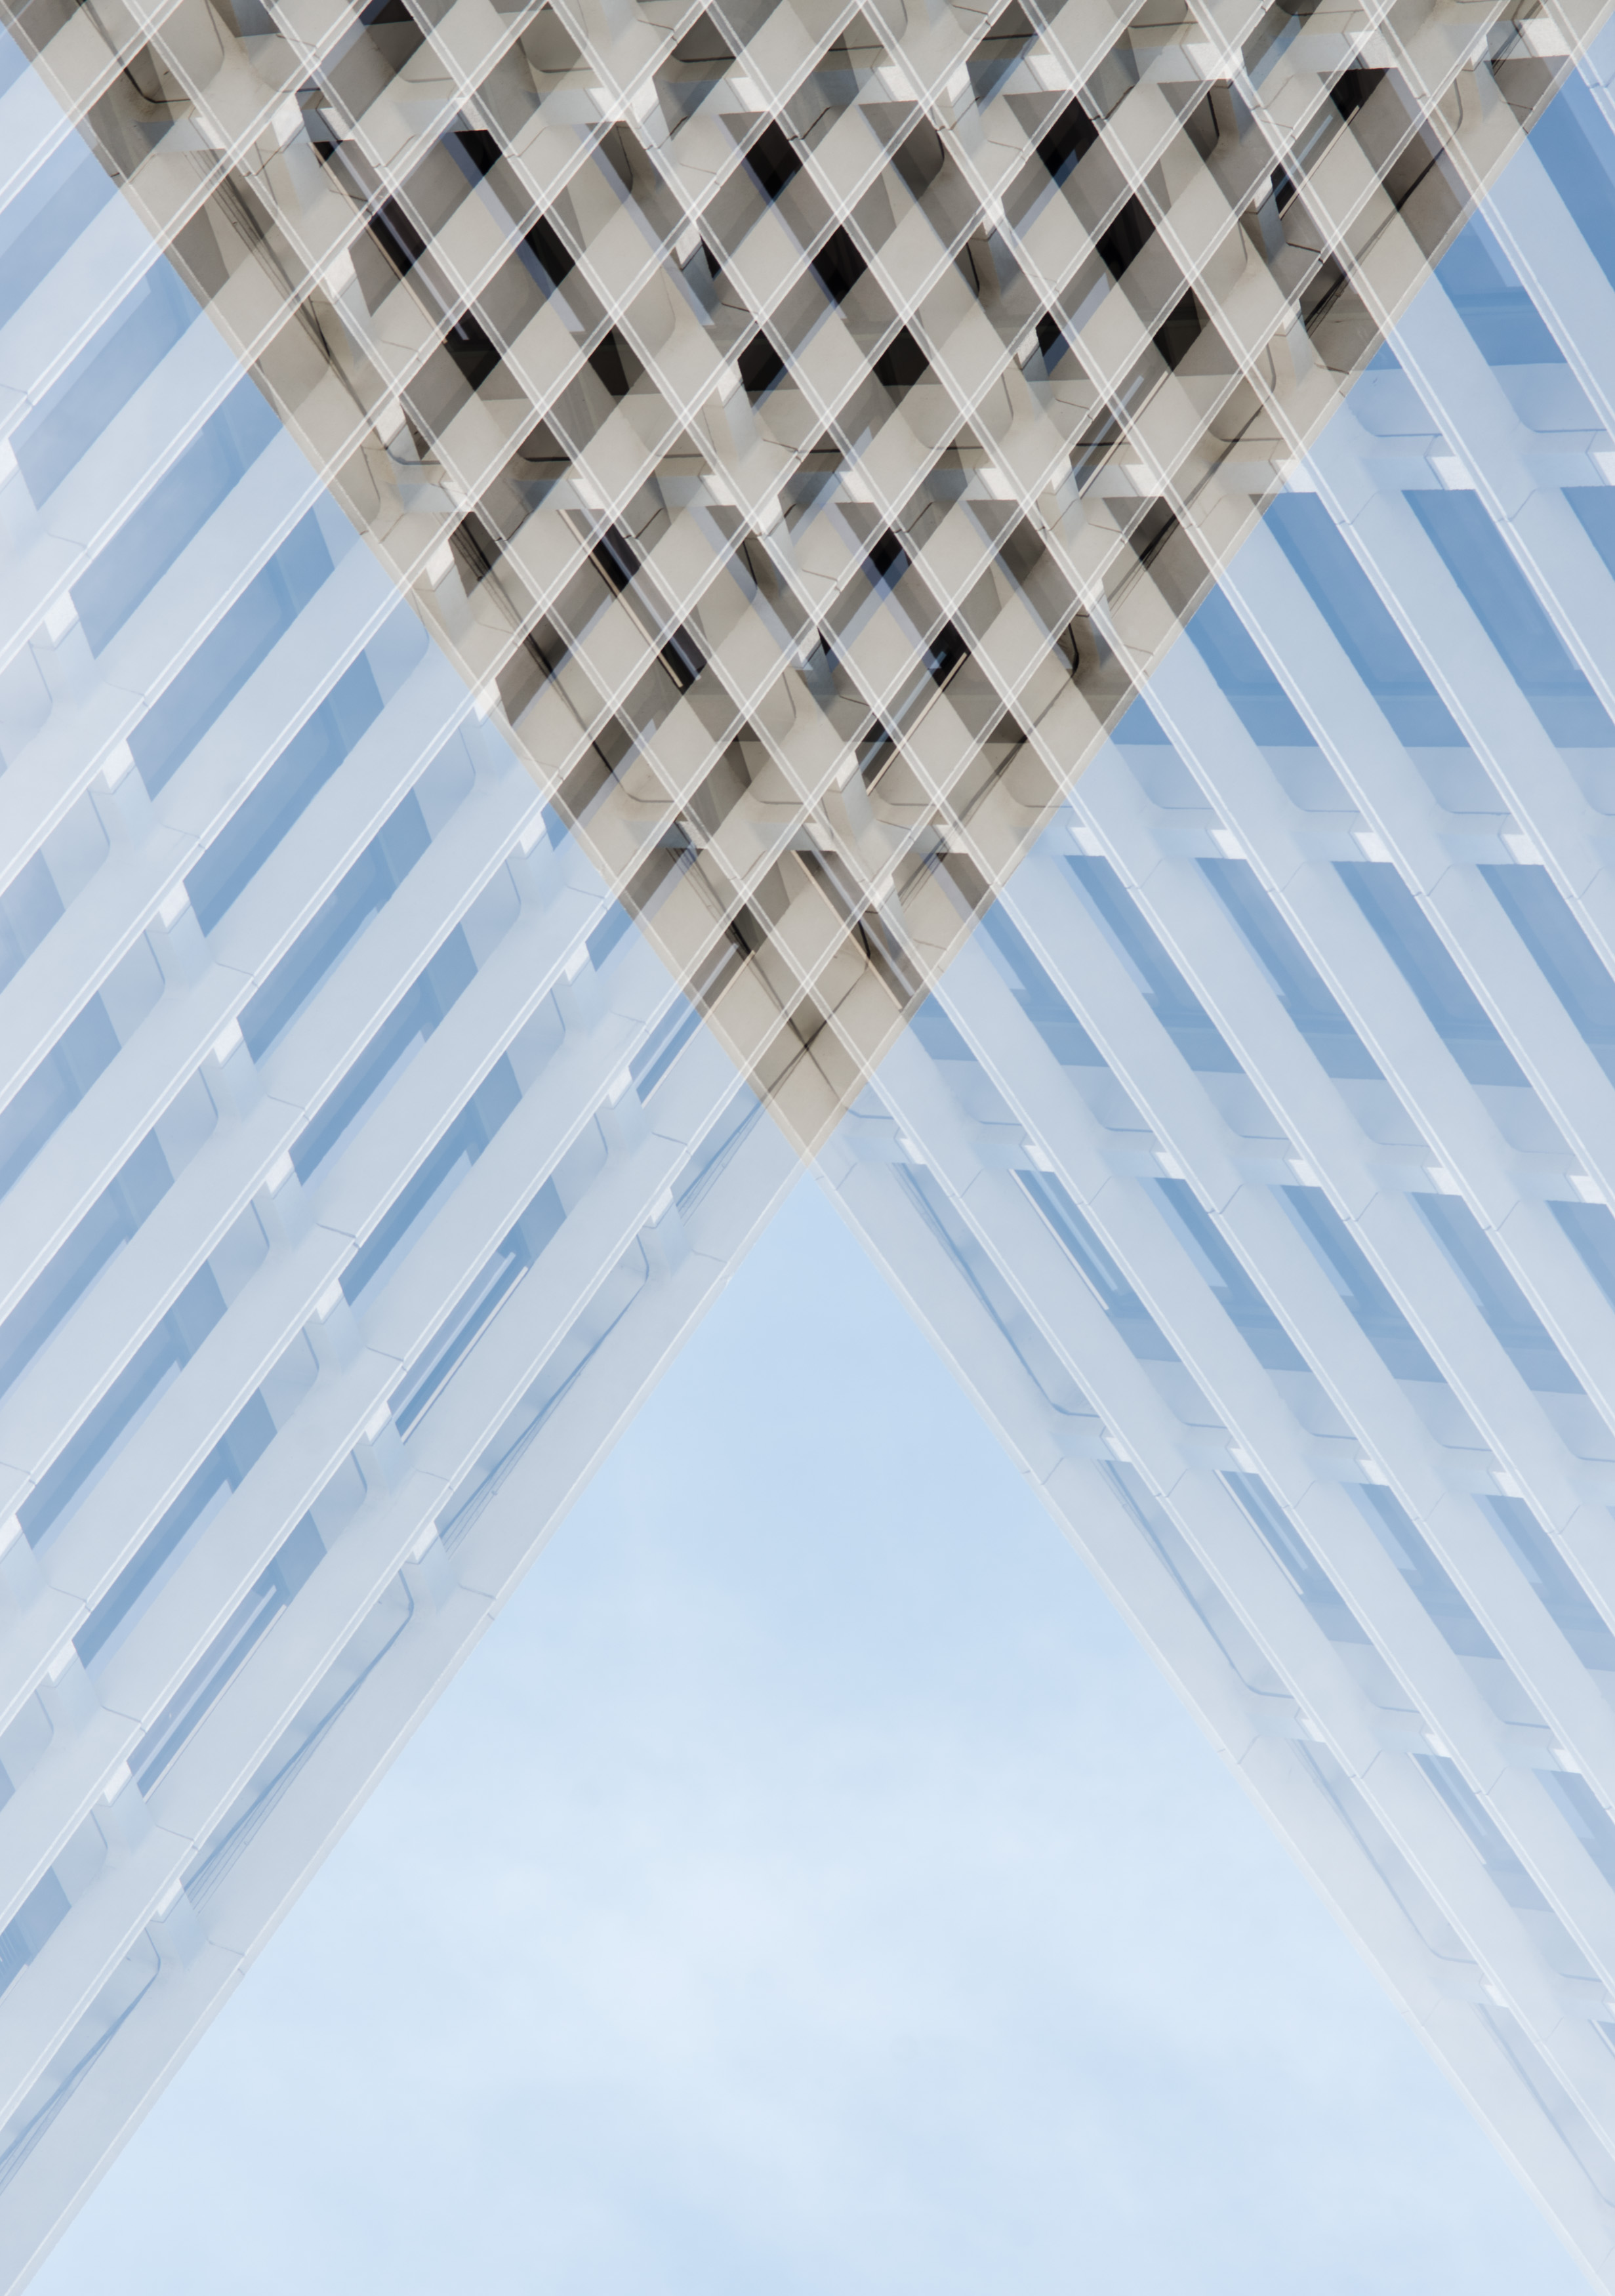 Trianle I,  2014 Archival pigment print 40x27 inches